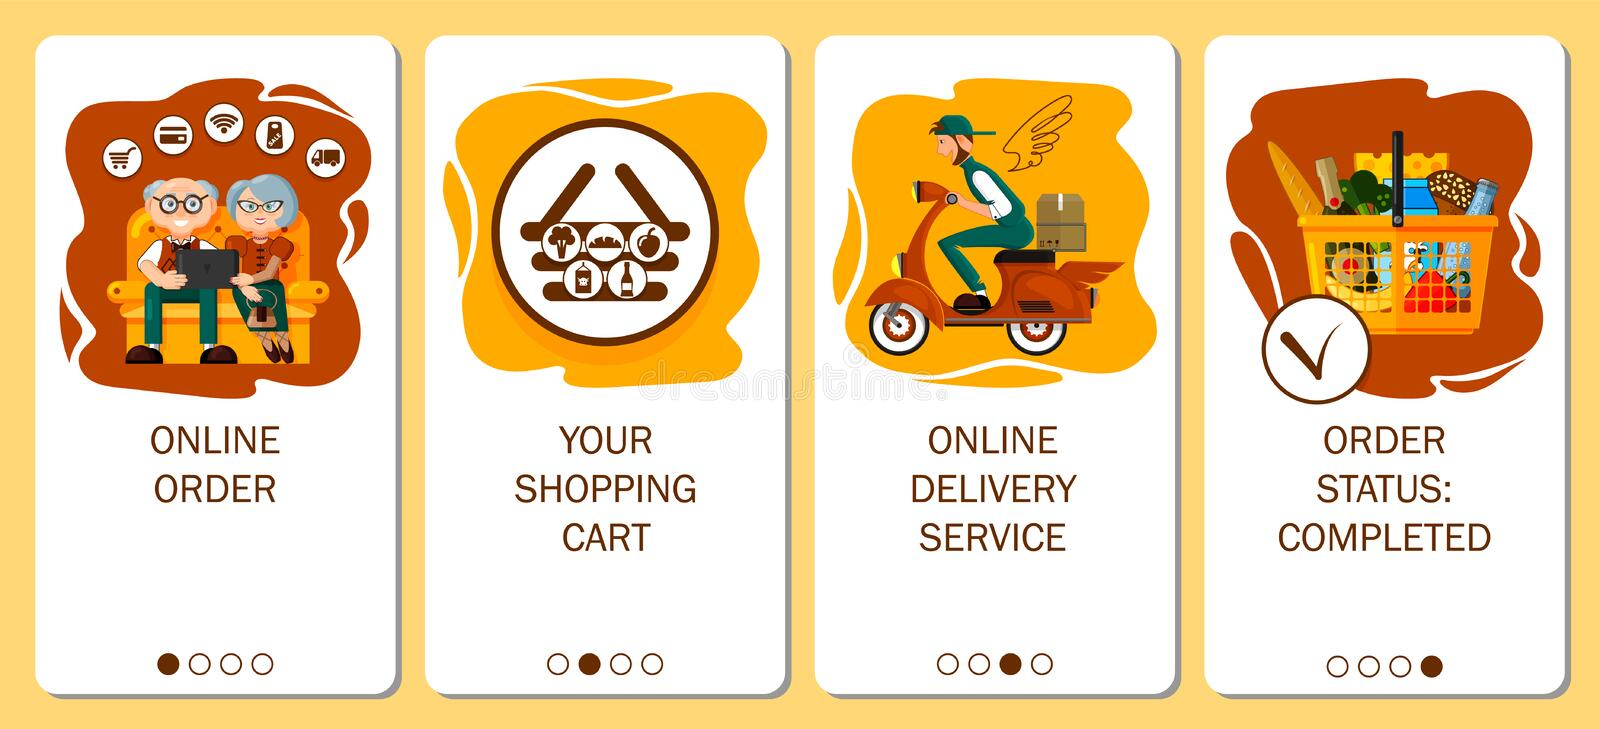 Design of mobile app to onboarding screens. Online order service, food delivery, order grocery in online store stock illustration